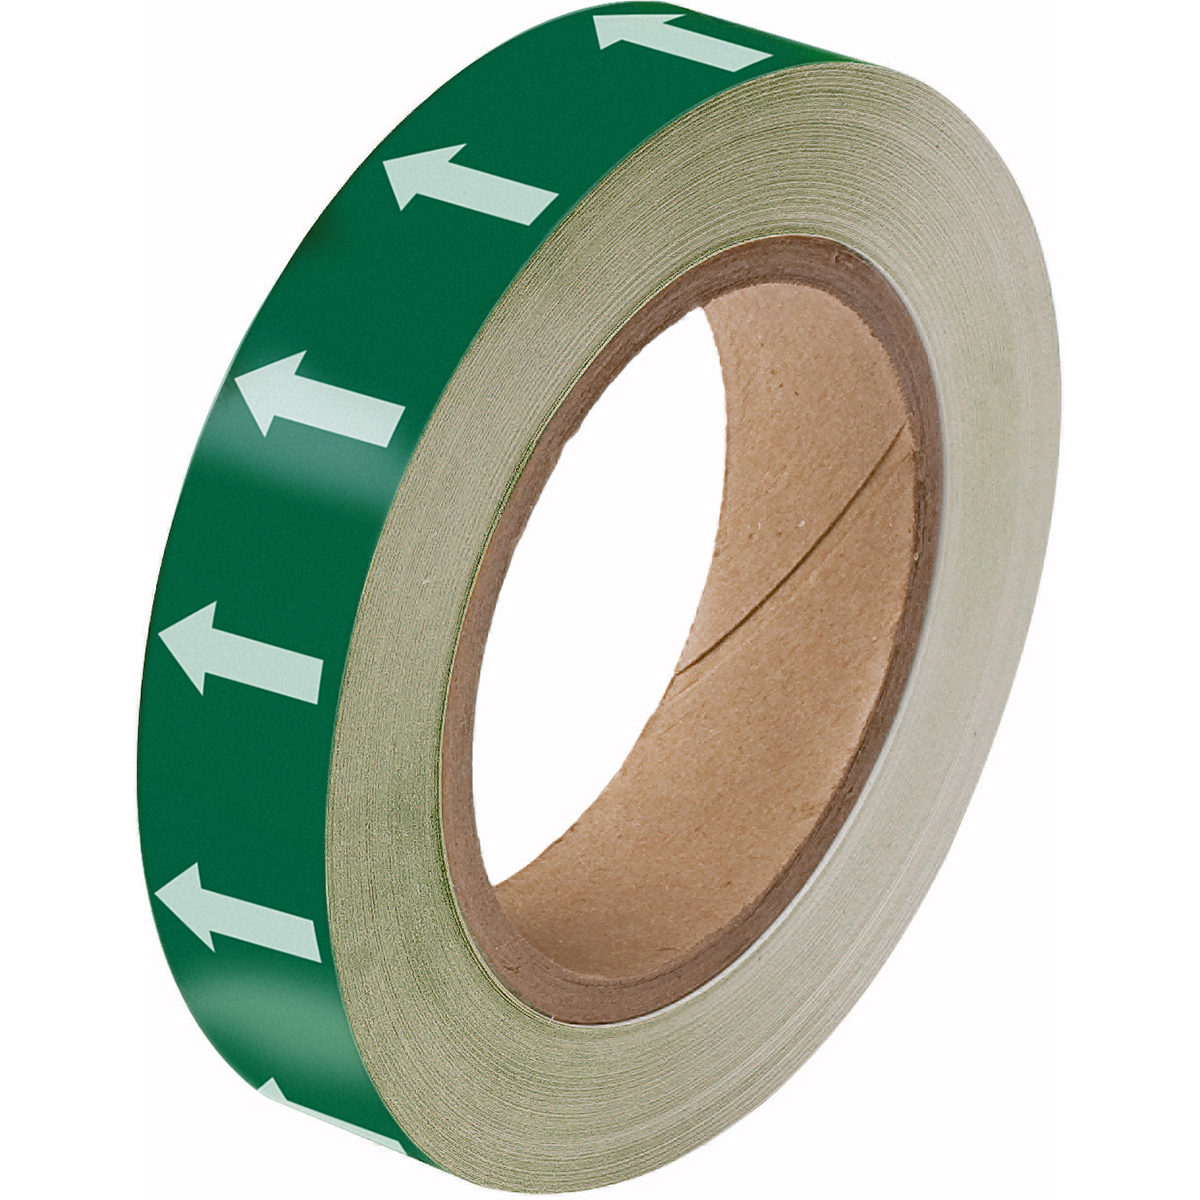 White on Green Directional Flow Arrow Tape